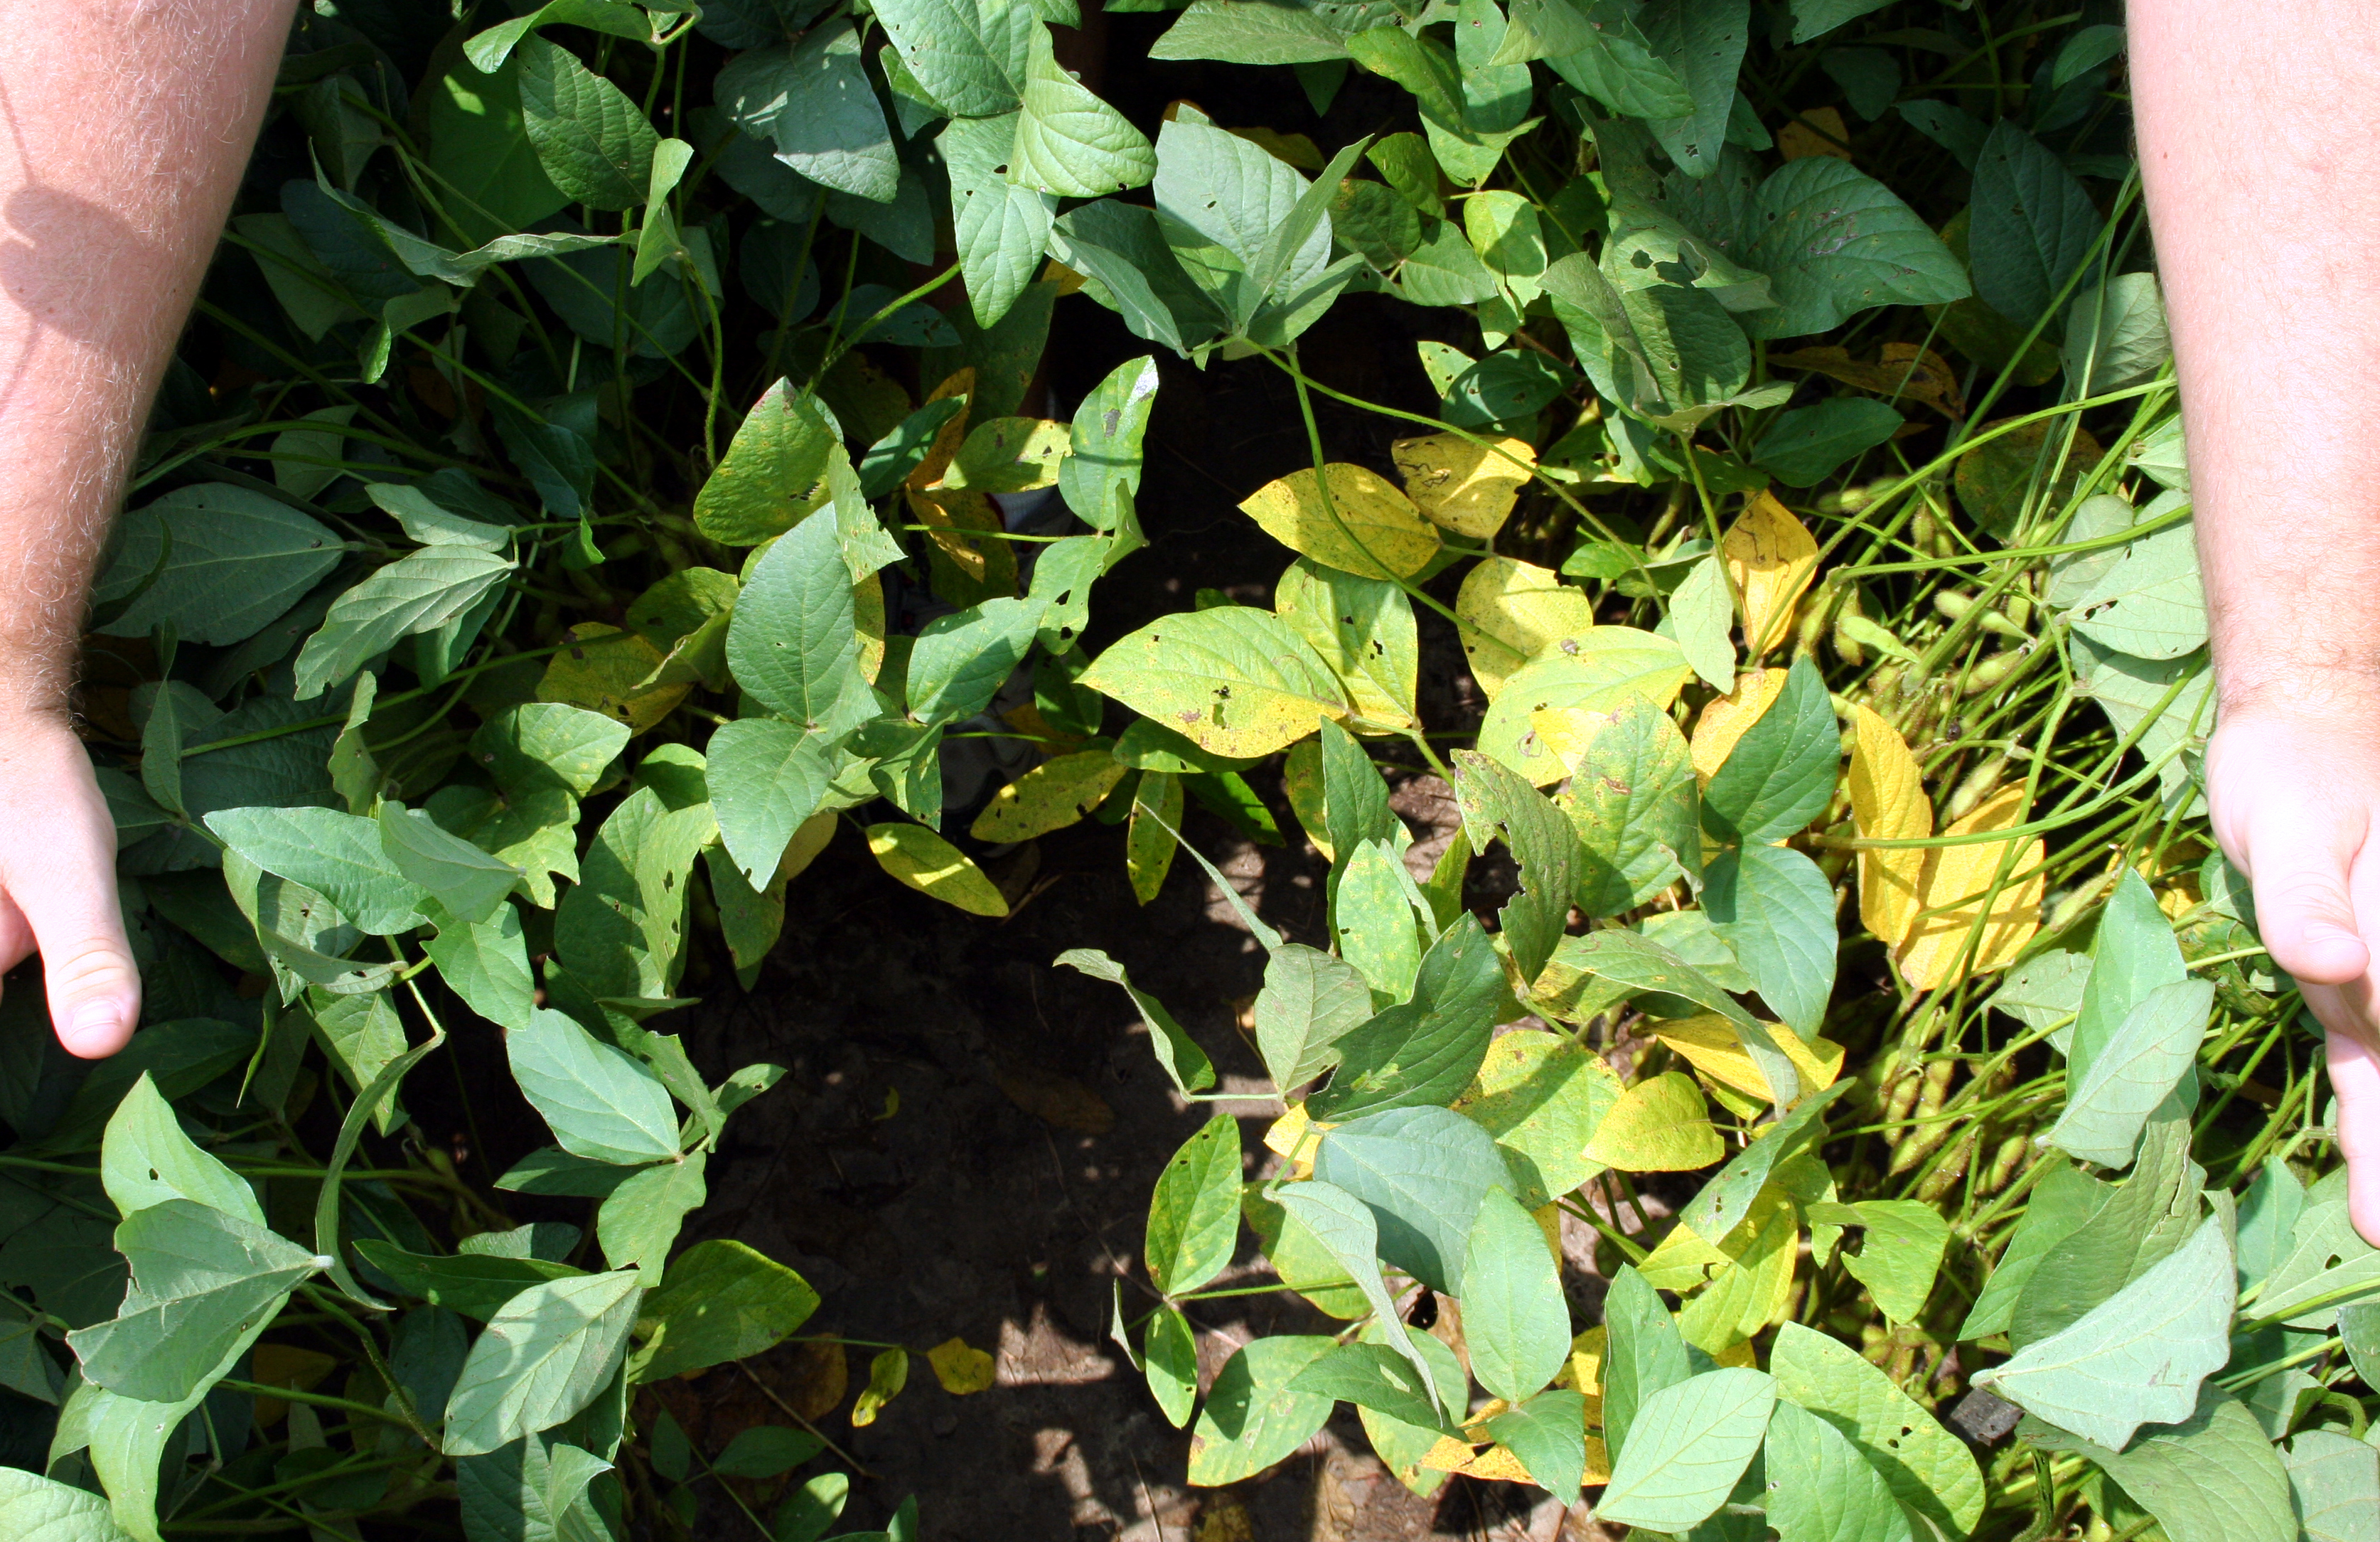 Canopy leaves parted to reveal lower leaves with soybean rust.